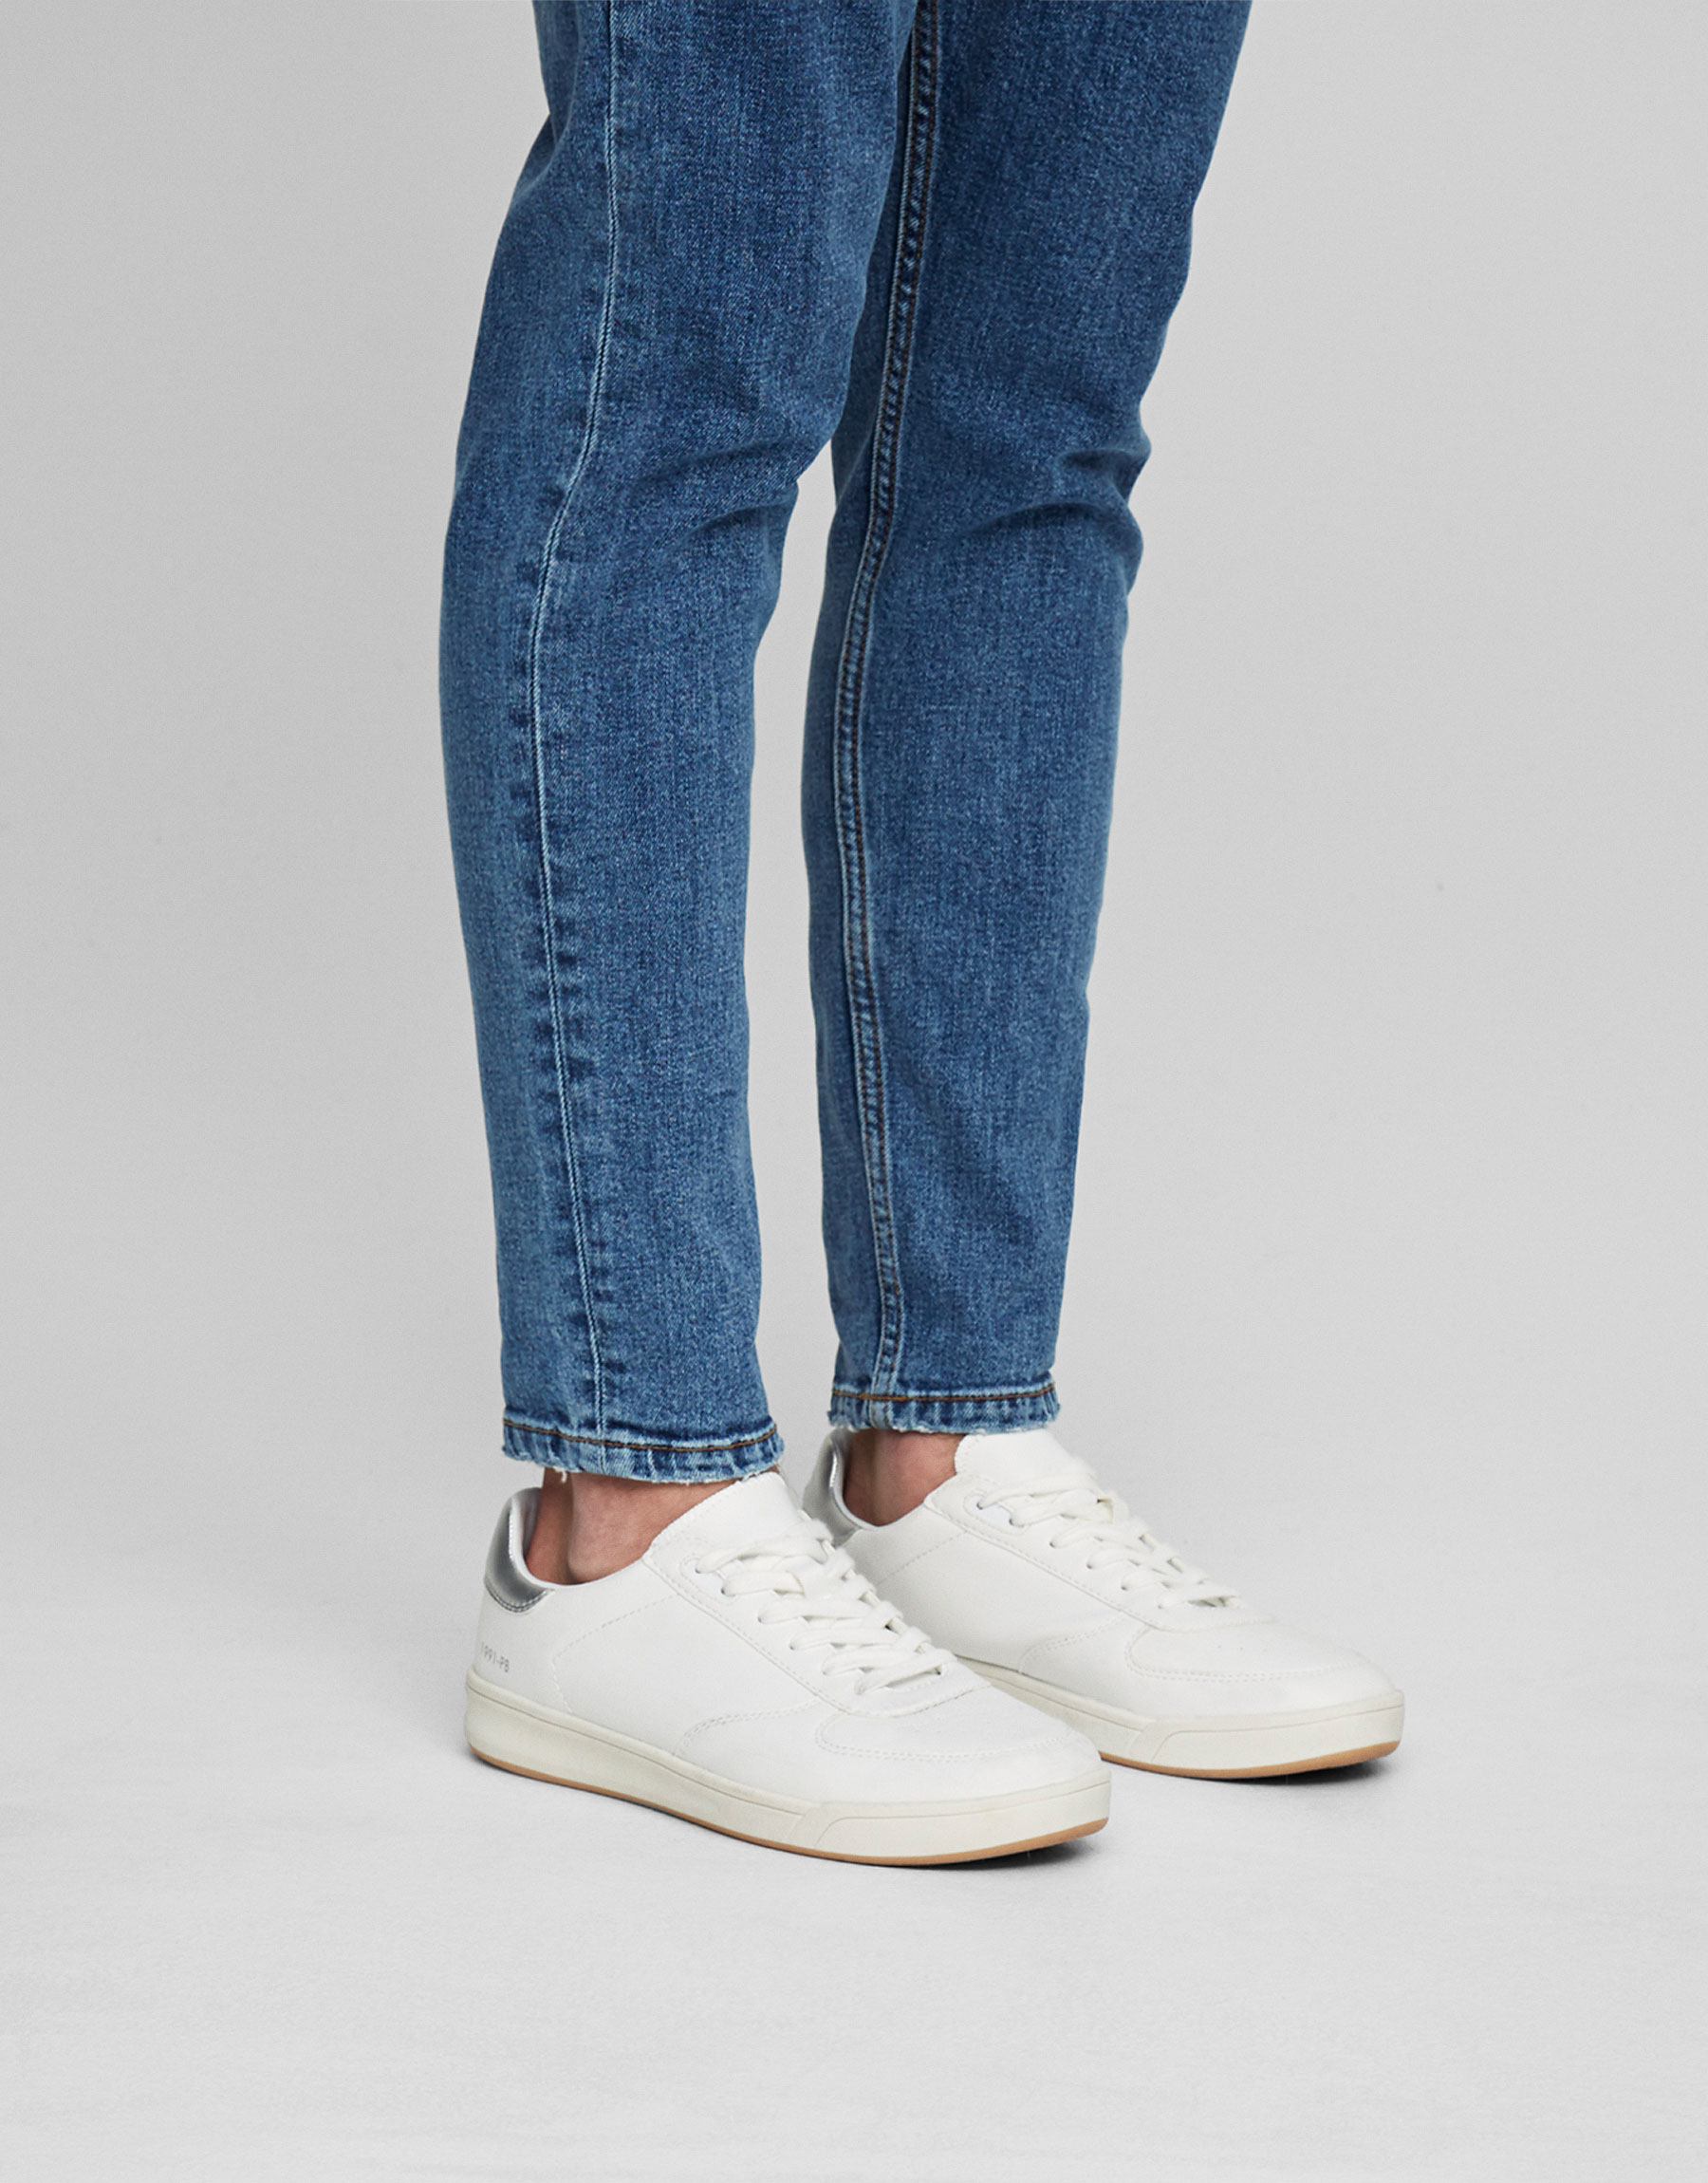 Plimsolls with silver-toned detail